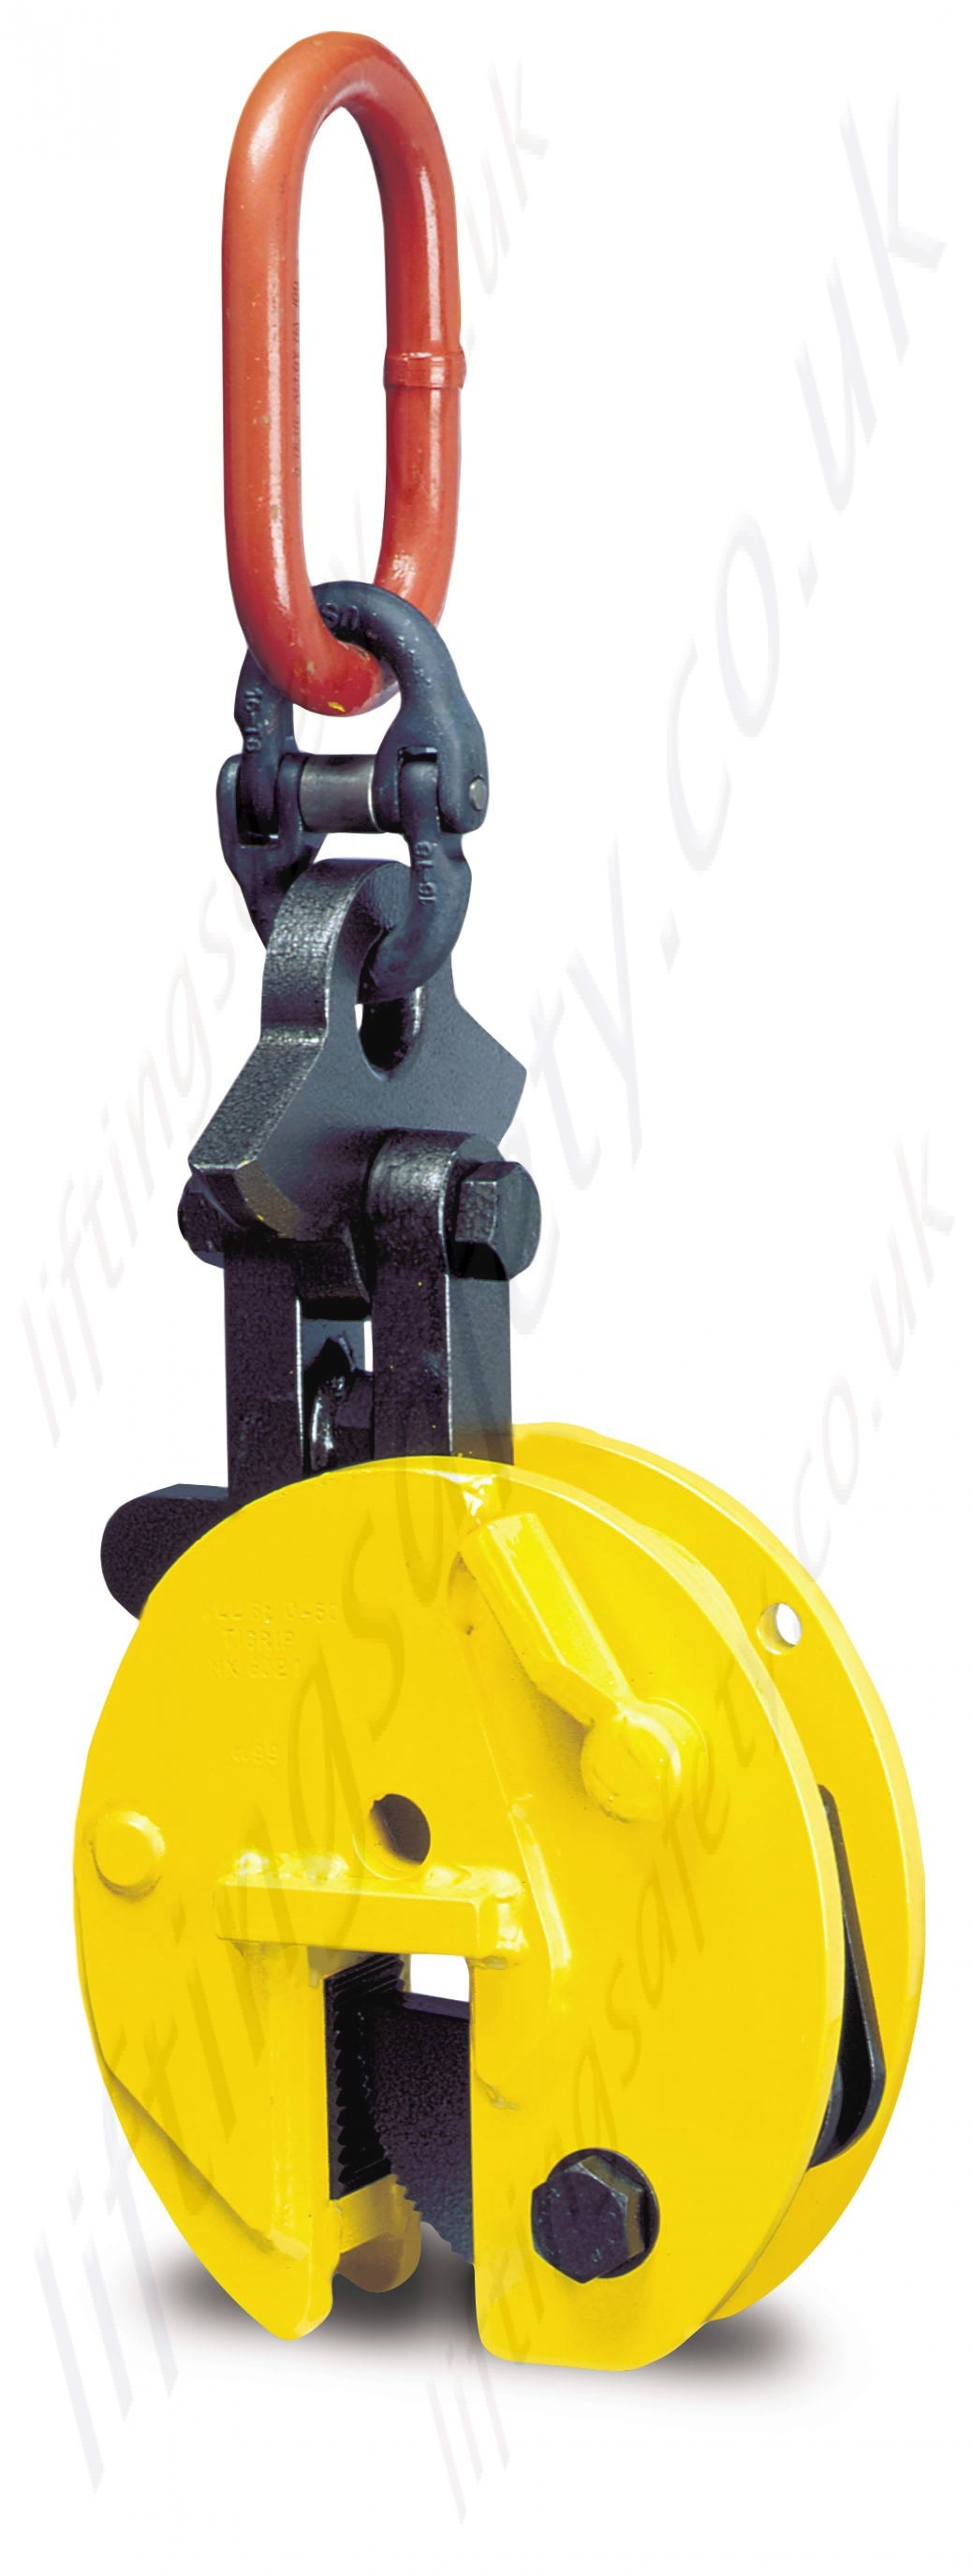 Camlok cx heavy duty hinged clamp range from kg to